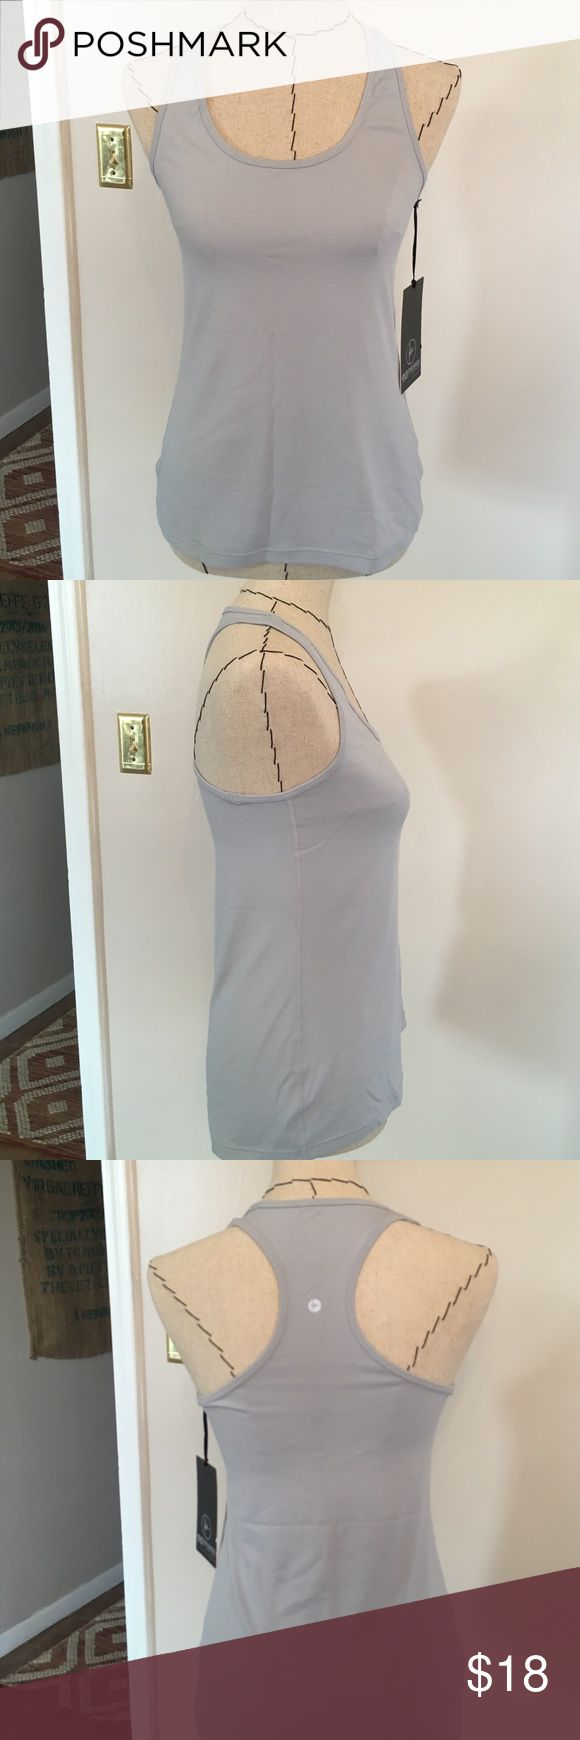 NWT 90 Degree by Reflex Workout Tank Brand new, never worn workout tank. Soft and stretchy moisture wicking technology fabric. Racerback style. It's a silver gray color. 90 degree by Reflex Tops Tank Tops